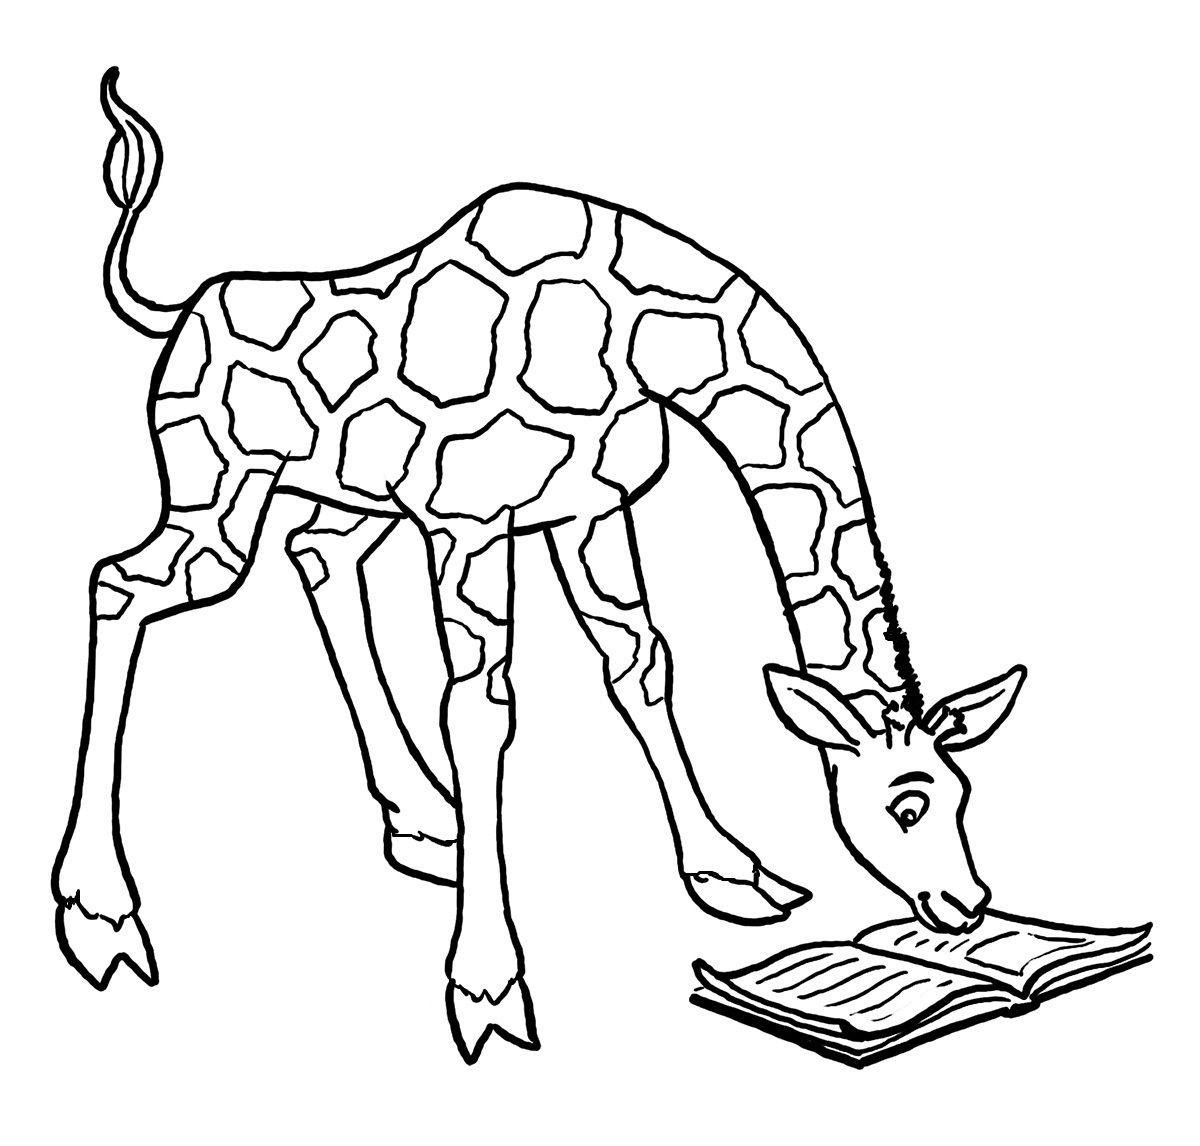 Uncategorized Giraffe Print Out seeing giraffes books pinterest giraffe coloring pages for kids printable kids